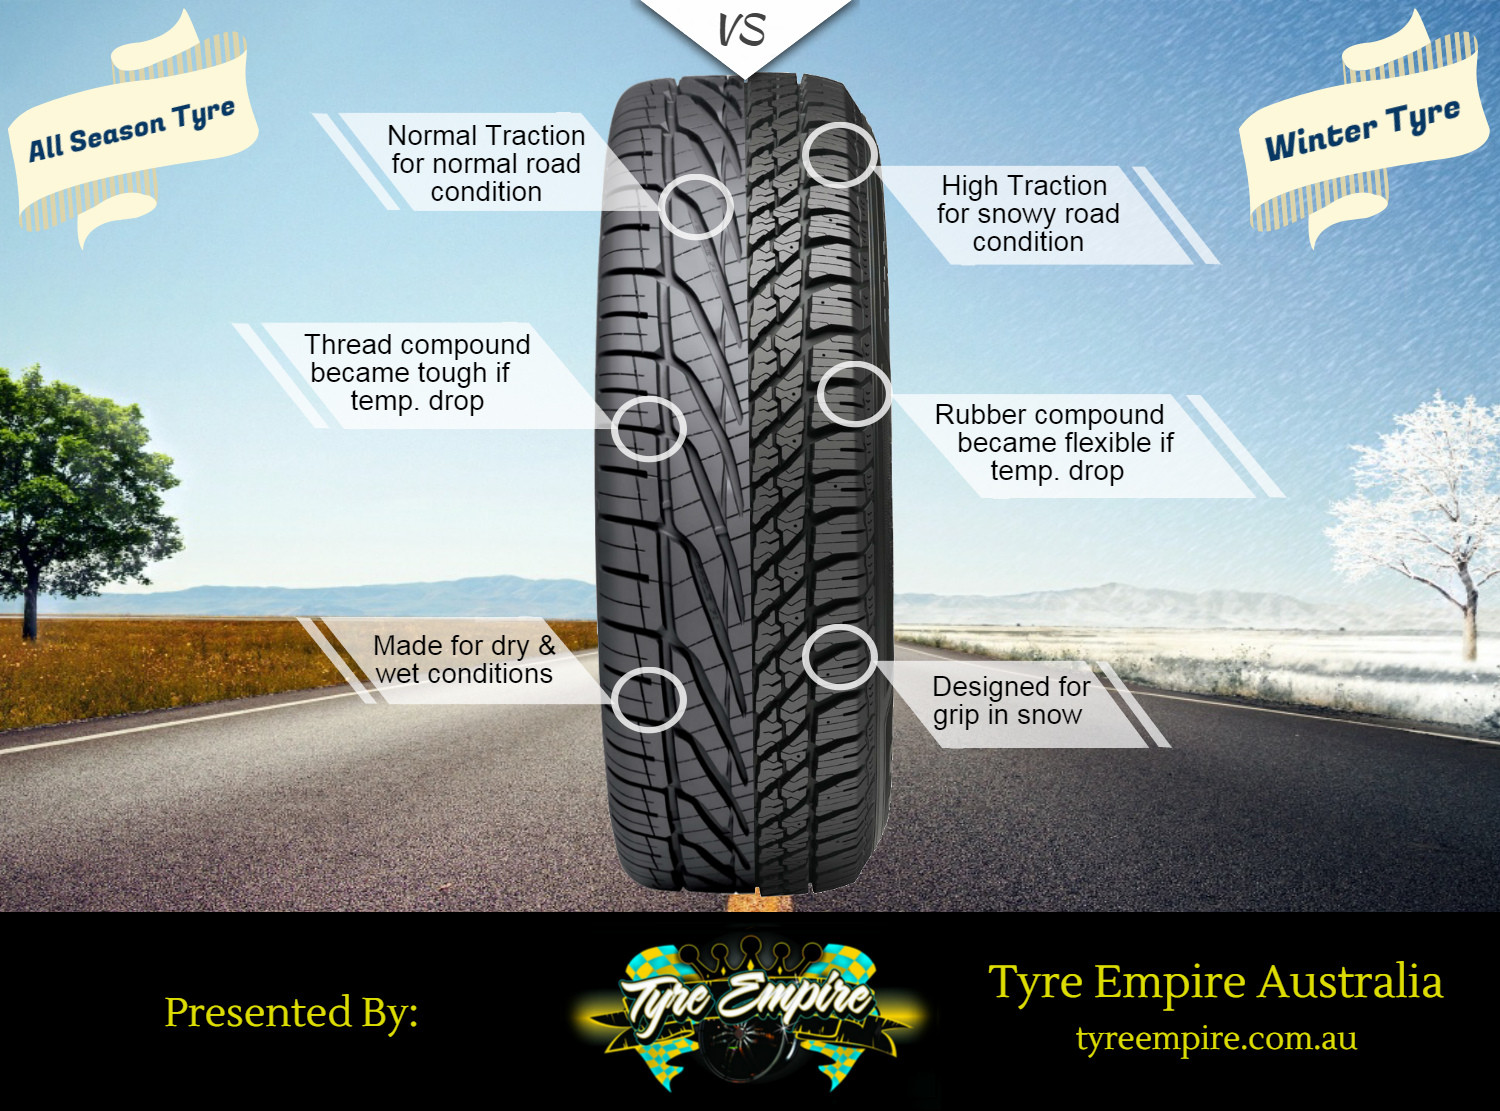 All-Season Tyres vs Winter Tyres Infographic